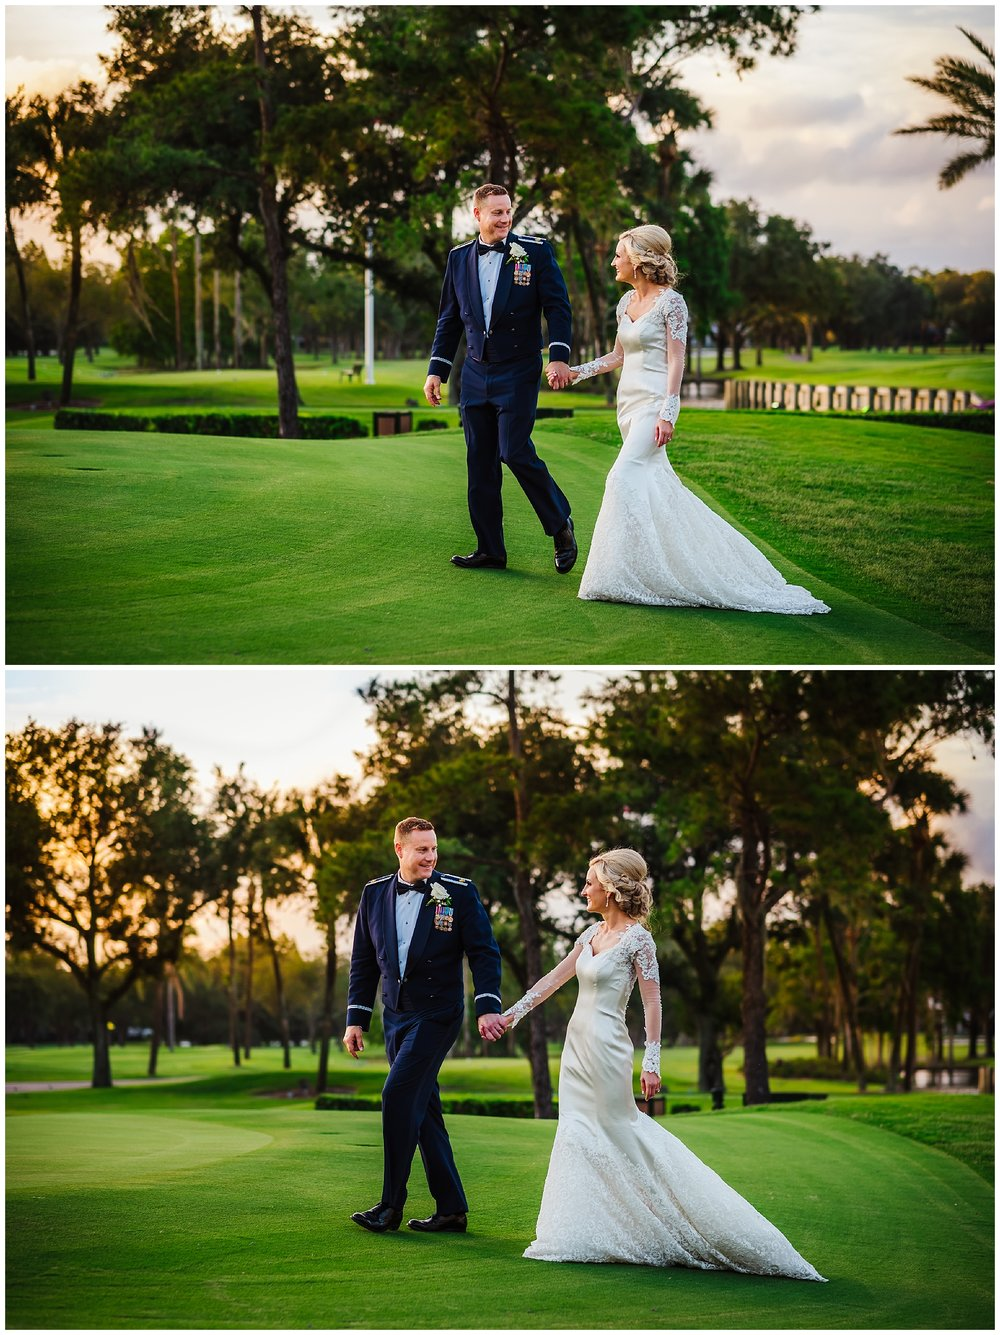 tampa-wedding-photographer-sleeves-palma-ceia-country-club-golf-course-sunset-luxury_0093.jpg